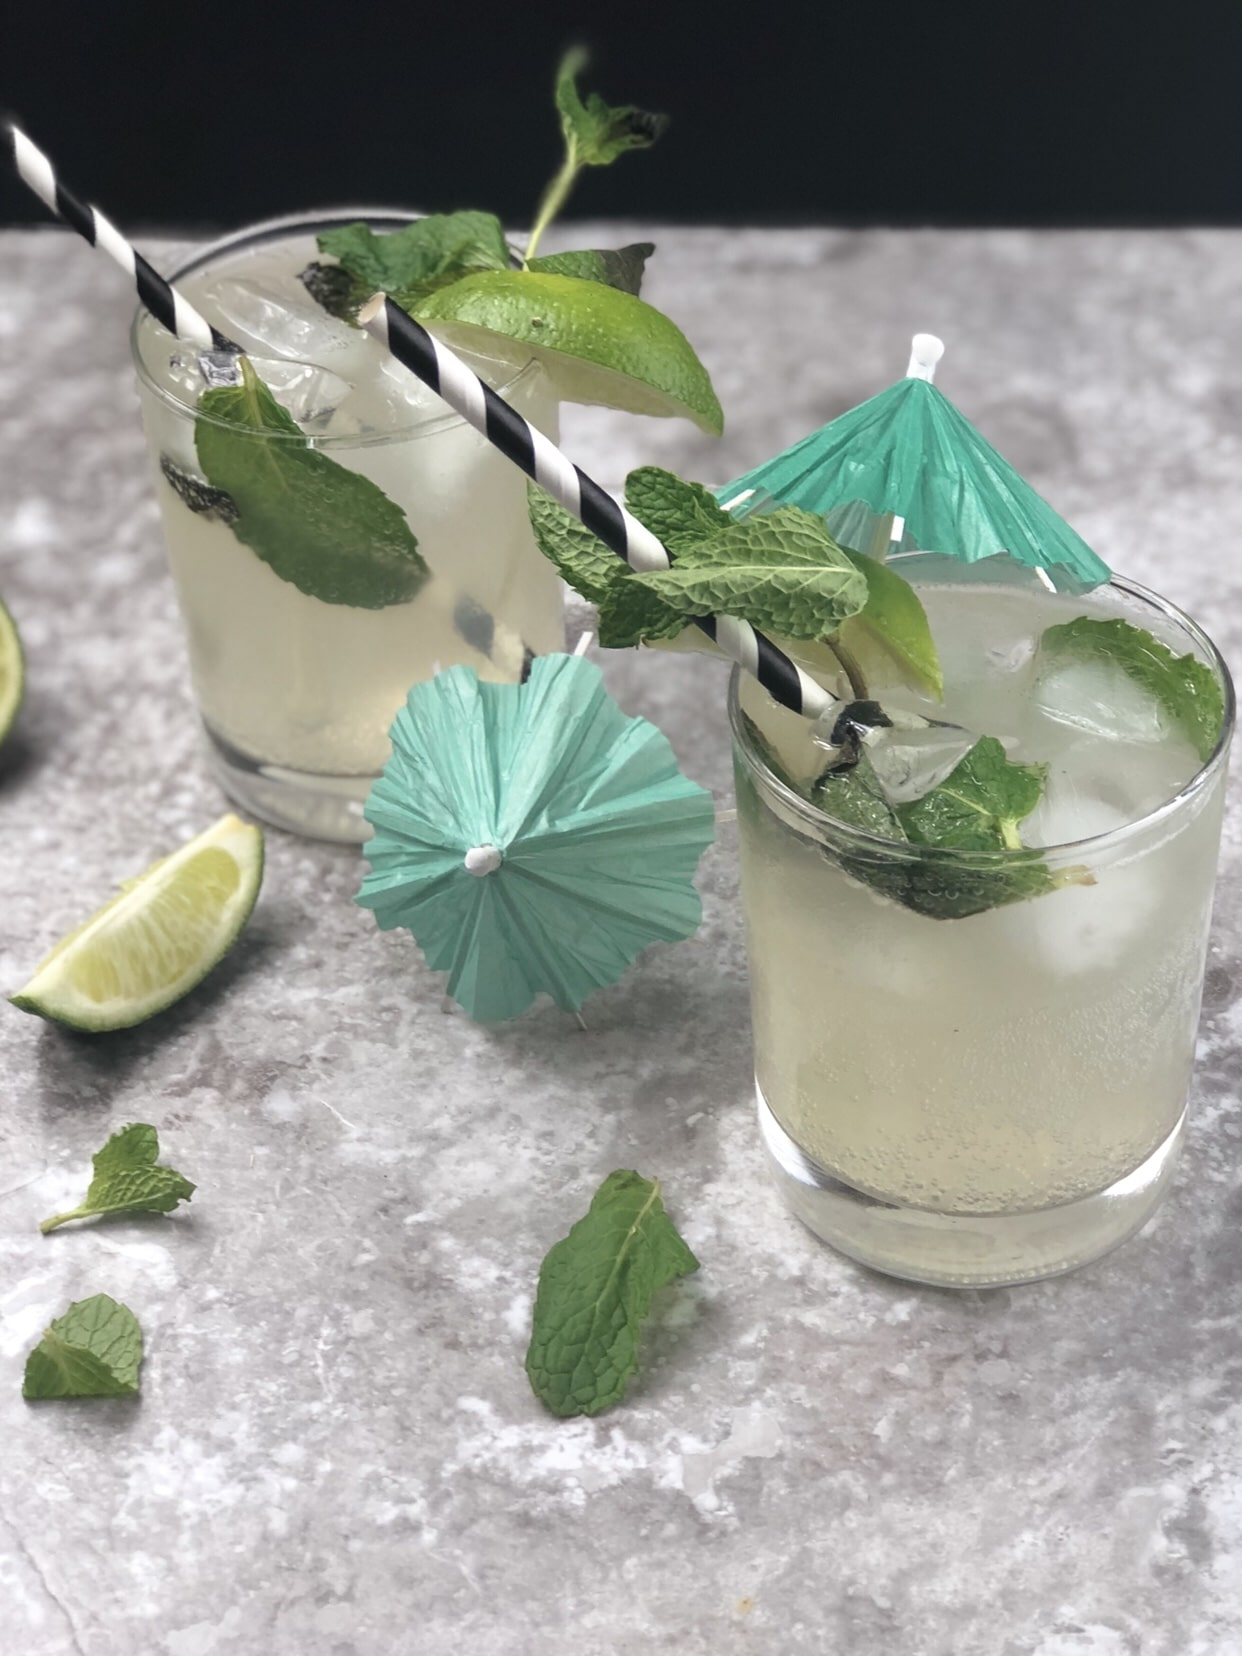 On those nice summer nights where an adult beverage sounds like it would hit the spot, whip up this vodka keto mojito which is a low carb cocktail. It is easy for people to not consider the sugar in drinks when they start watching carbs after starting a ketogenic diet. #ketomojito #vodkaketo #lowcarb #lowcarbcocktails #mojitorecipe #cocktail